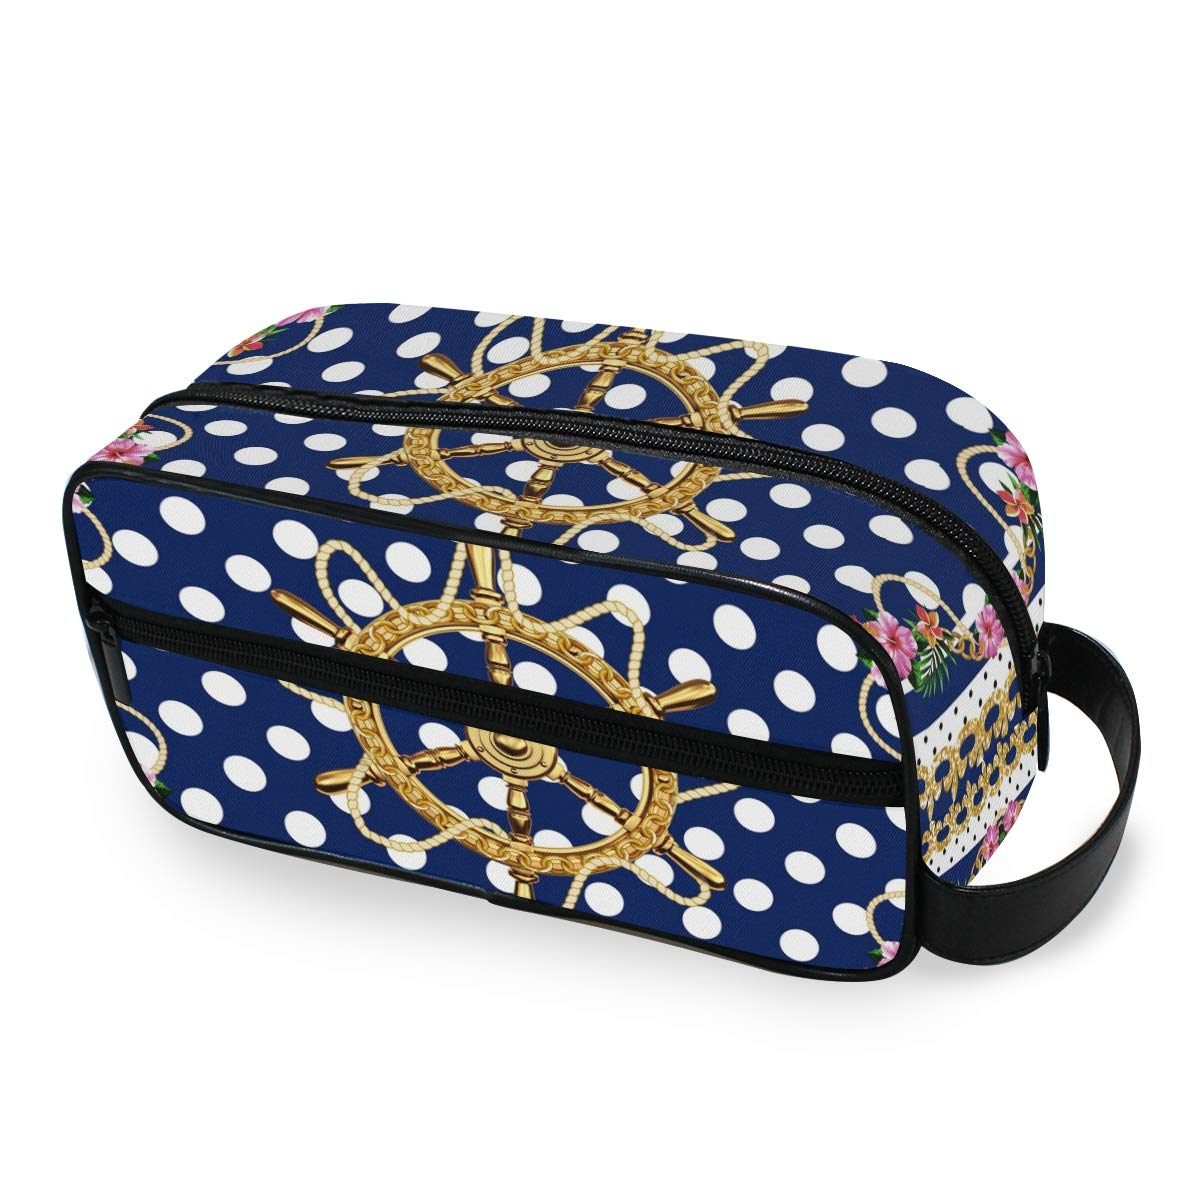 Makeup Bag Portable Travel Cosmetic Toiletry Bag Ship Wheel And Polka Dot Organizer Accessories Case Tools Case for Beauty Women